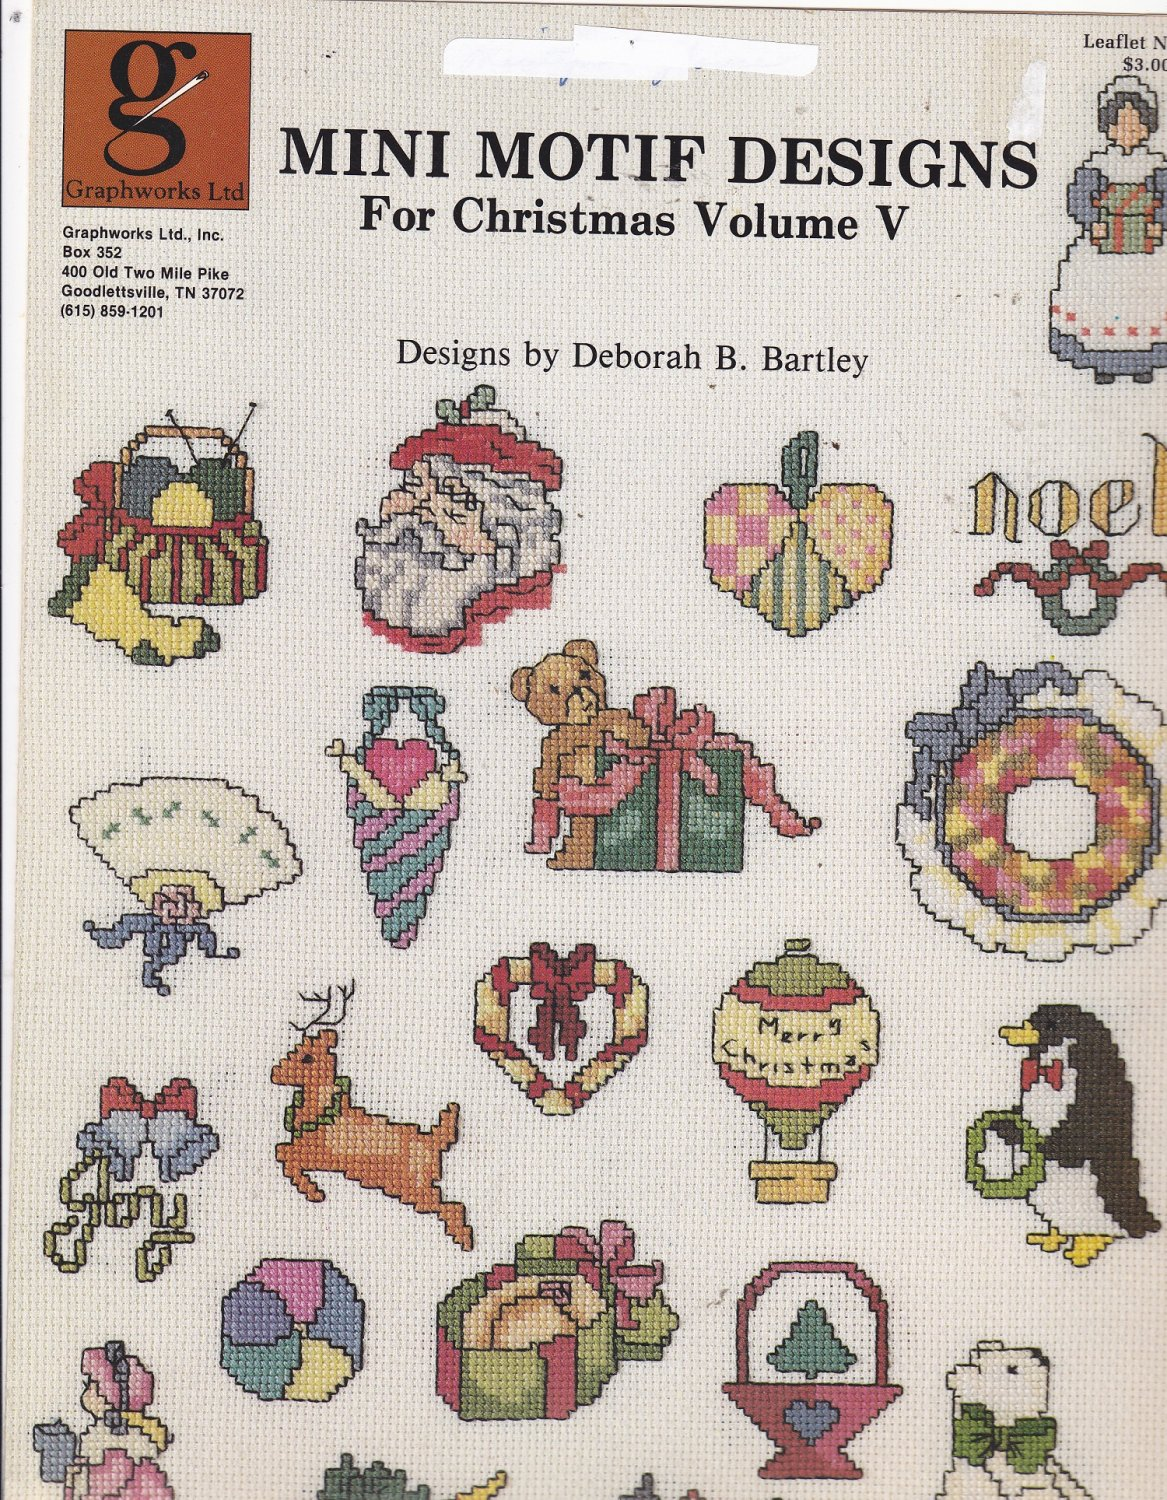 Graphworks Mini Motif Designs Christmas vol 5 leaflet 26 Counted Cross Stitch